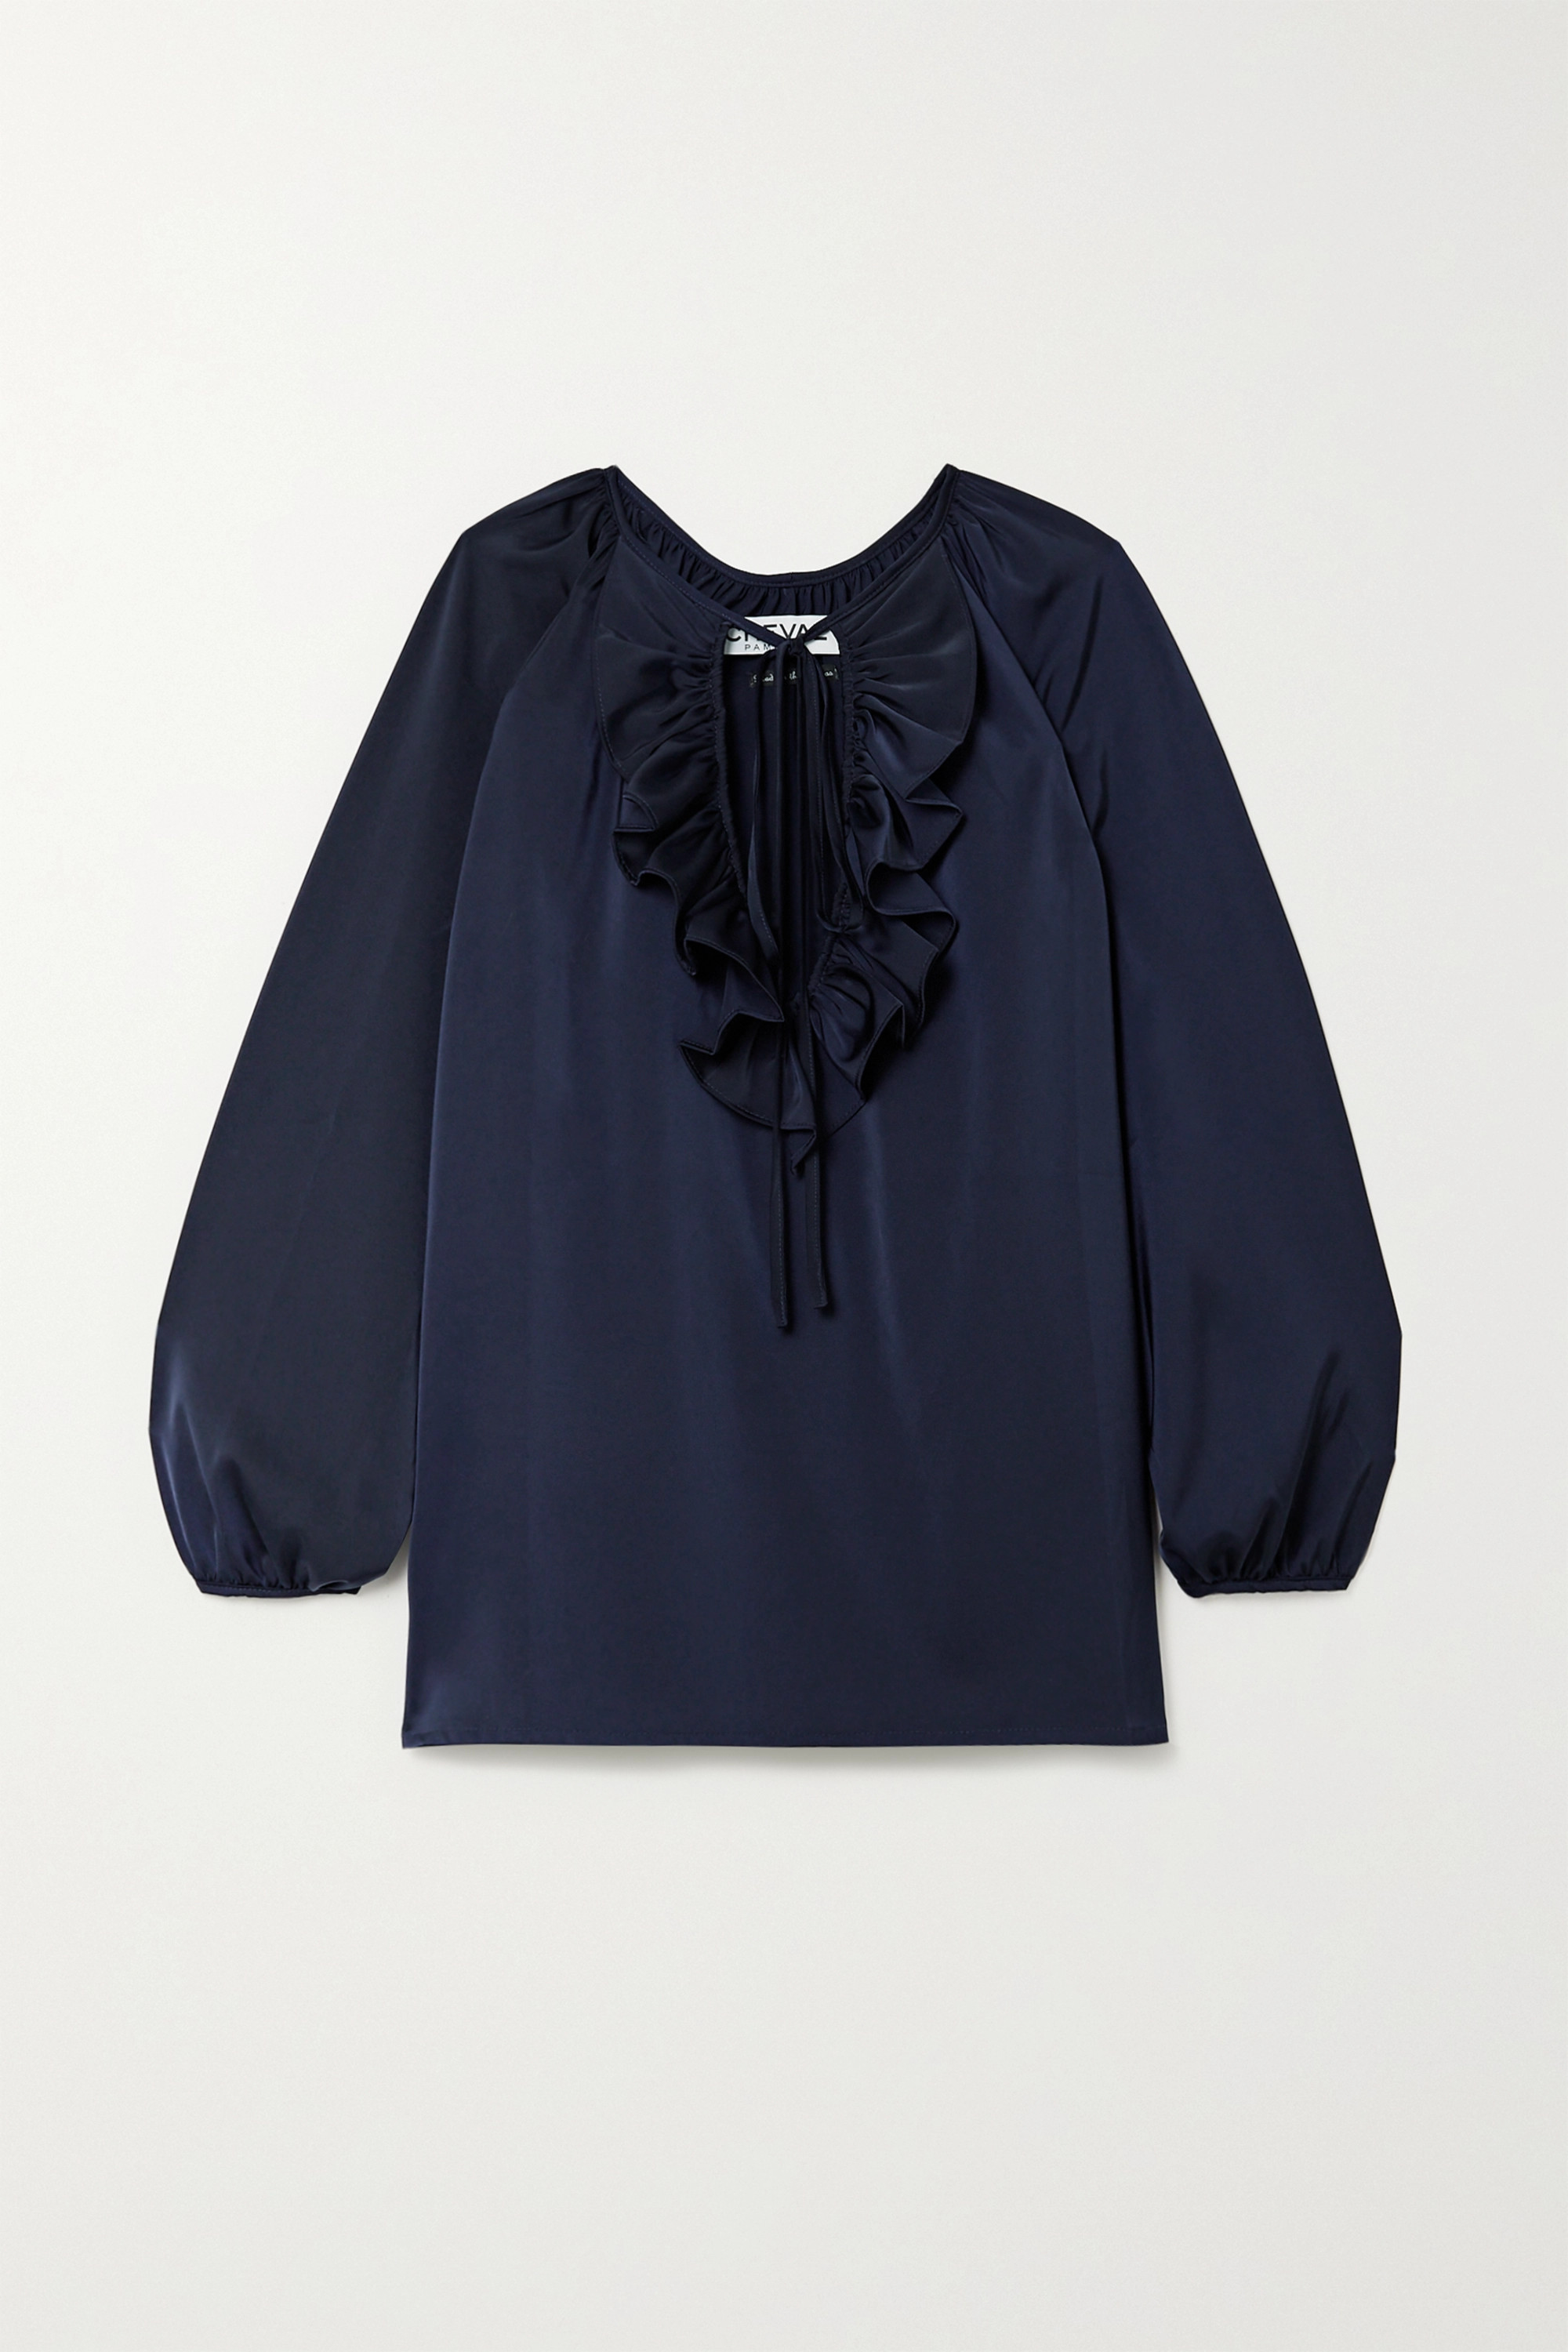 Àcheval Pampa Blouse en satin à volants et à liens Gorrion